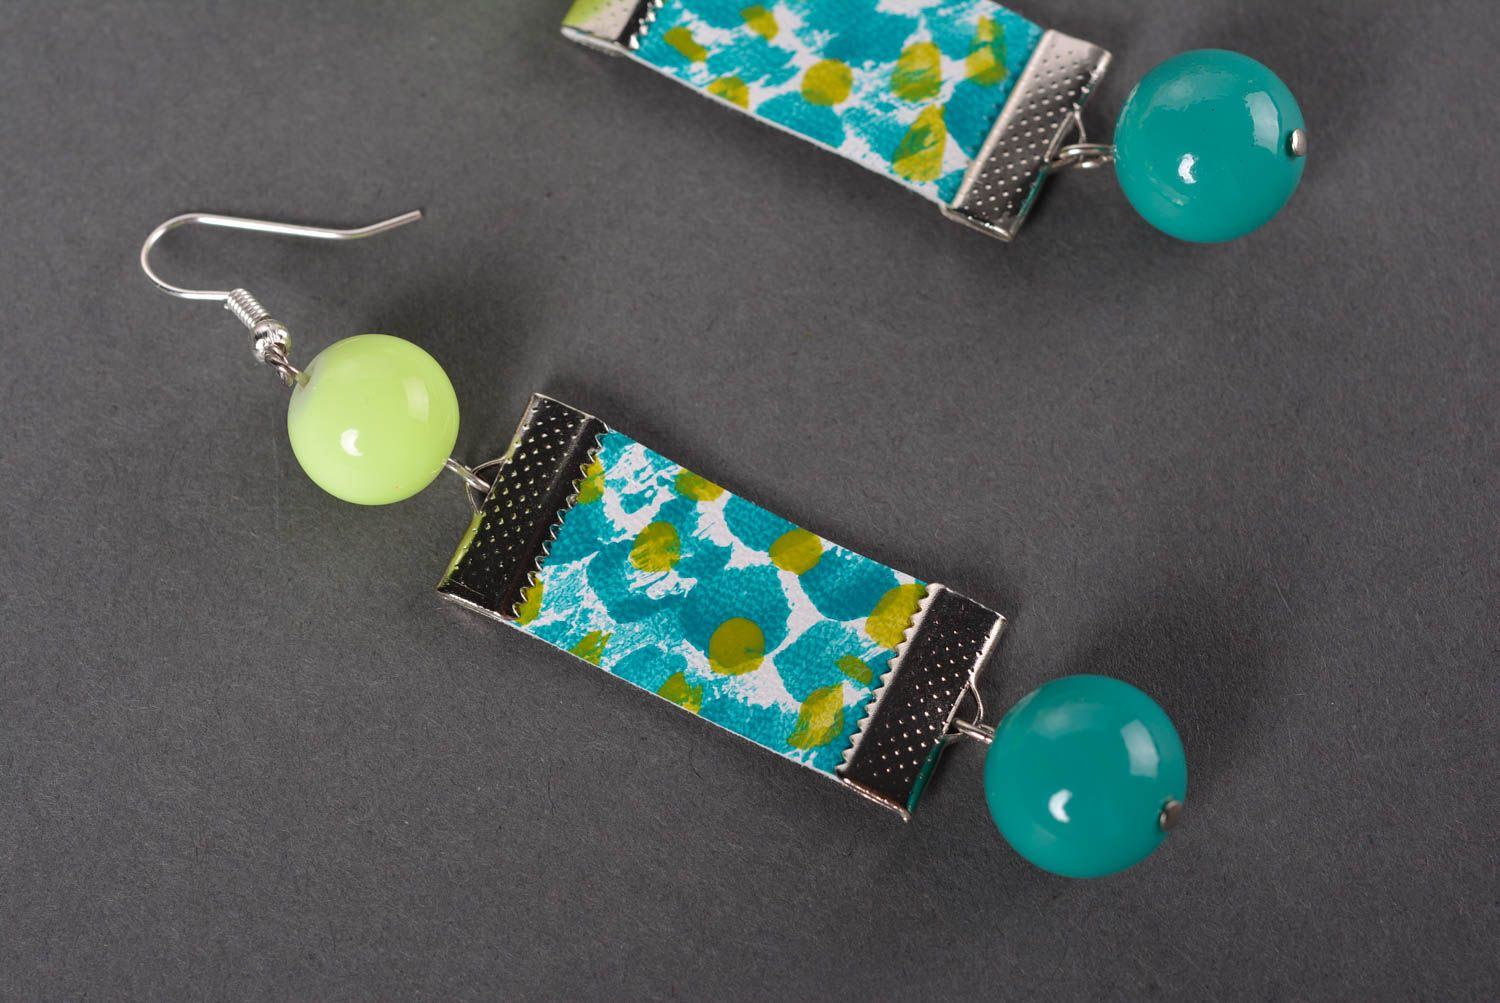 Stylish handmade leather earrings costume jewelry designs gifts for her photo 2